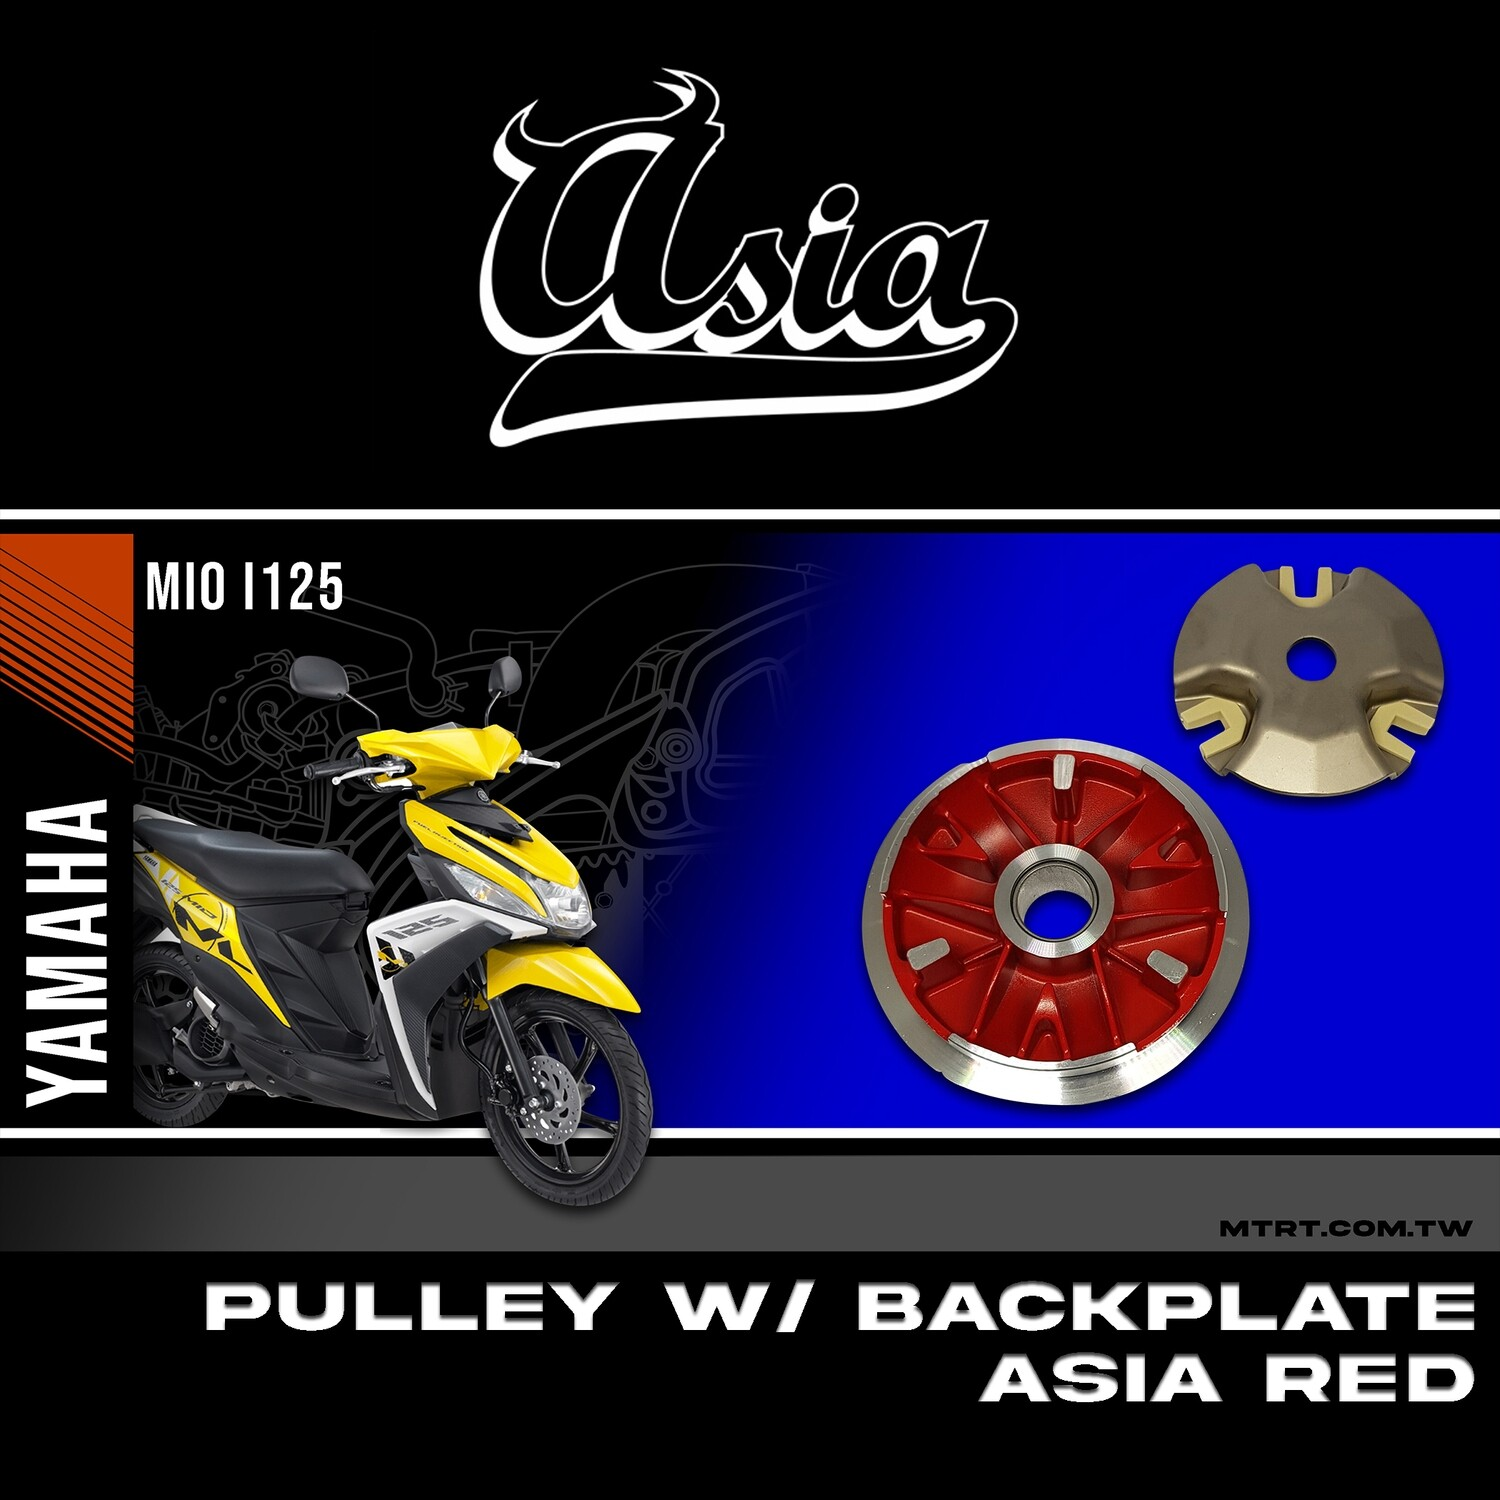 PULLEY WB BACK PLATE MIOi125 ASIA RED